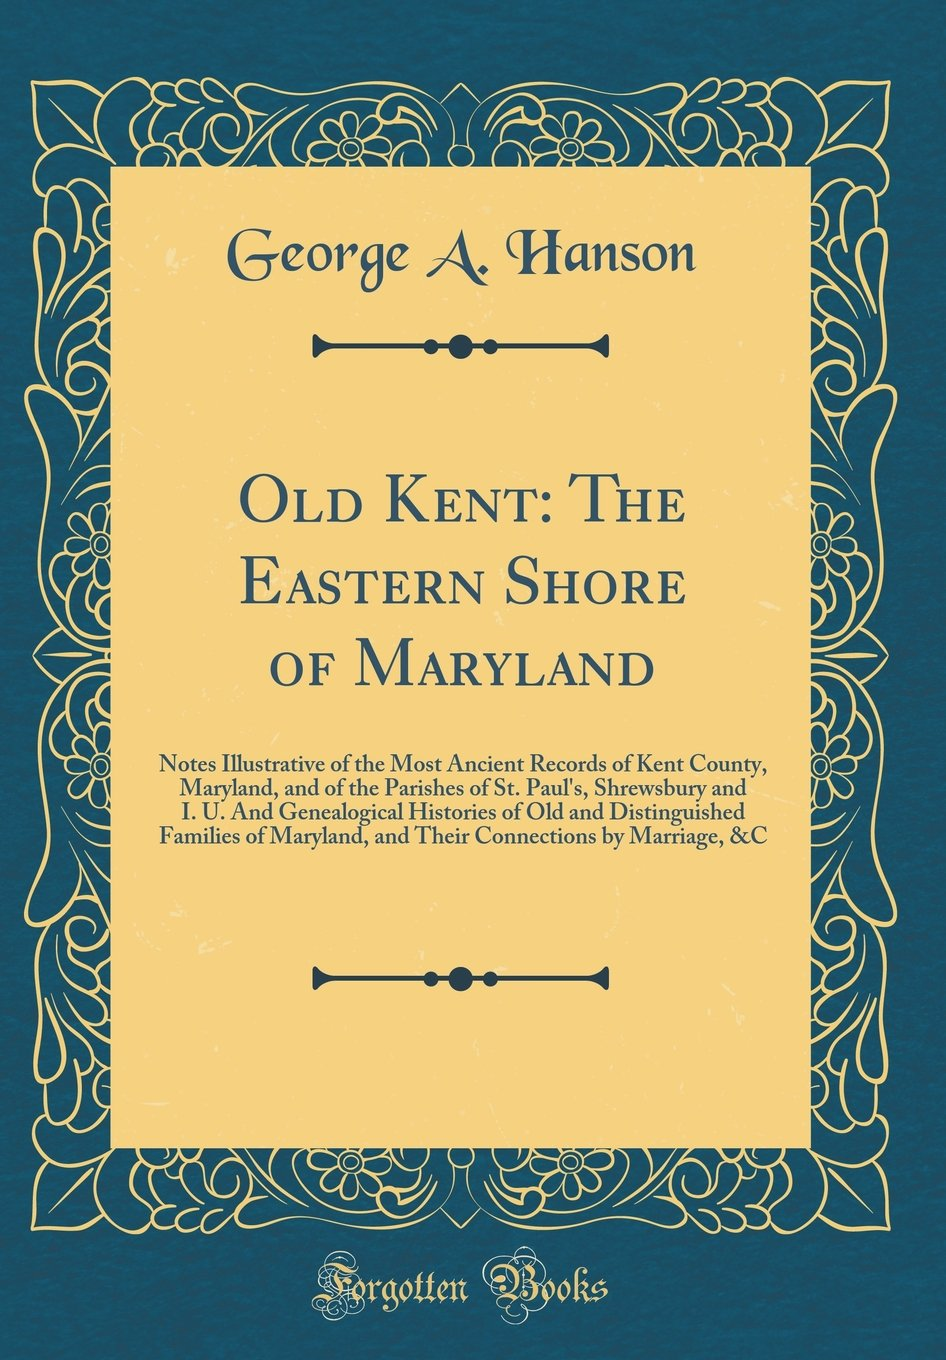 Download Old Kent: The Eastern Shore of Maryland: Notes Illustrative of the Most Ancient Records of Kent County, Maryland, and of the Parishes of St. Paul's, ... Families of Maryland, and Their C ebook